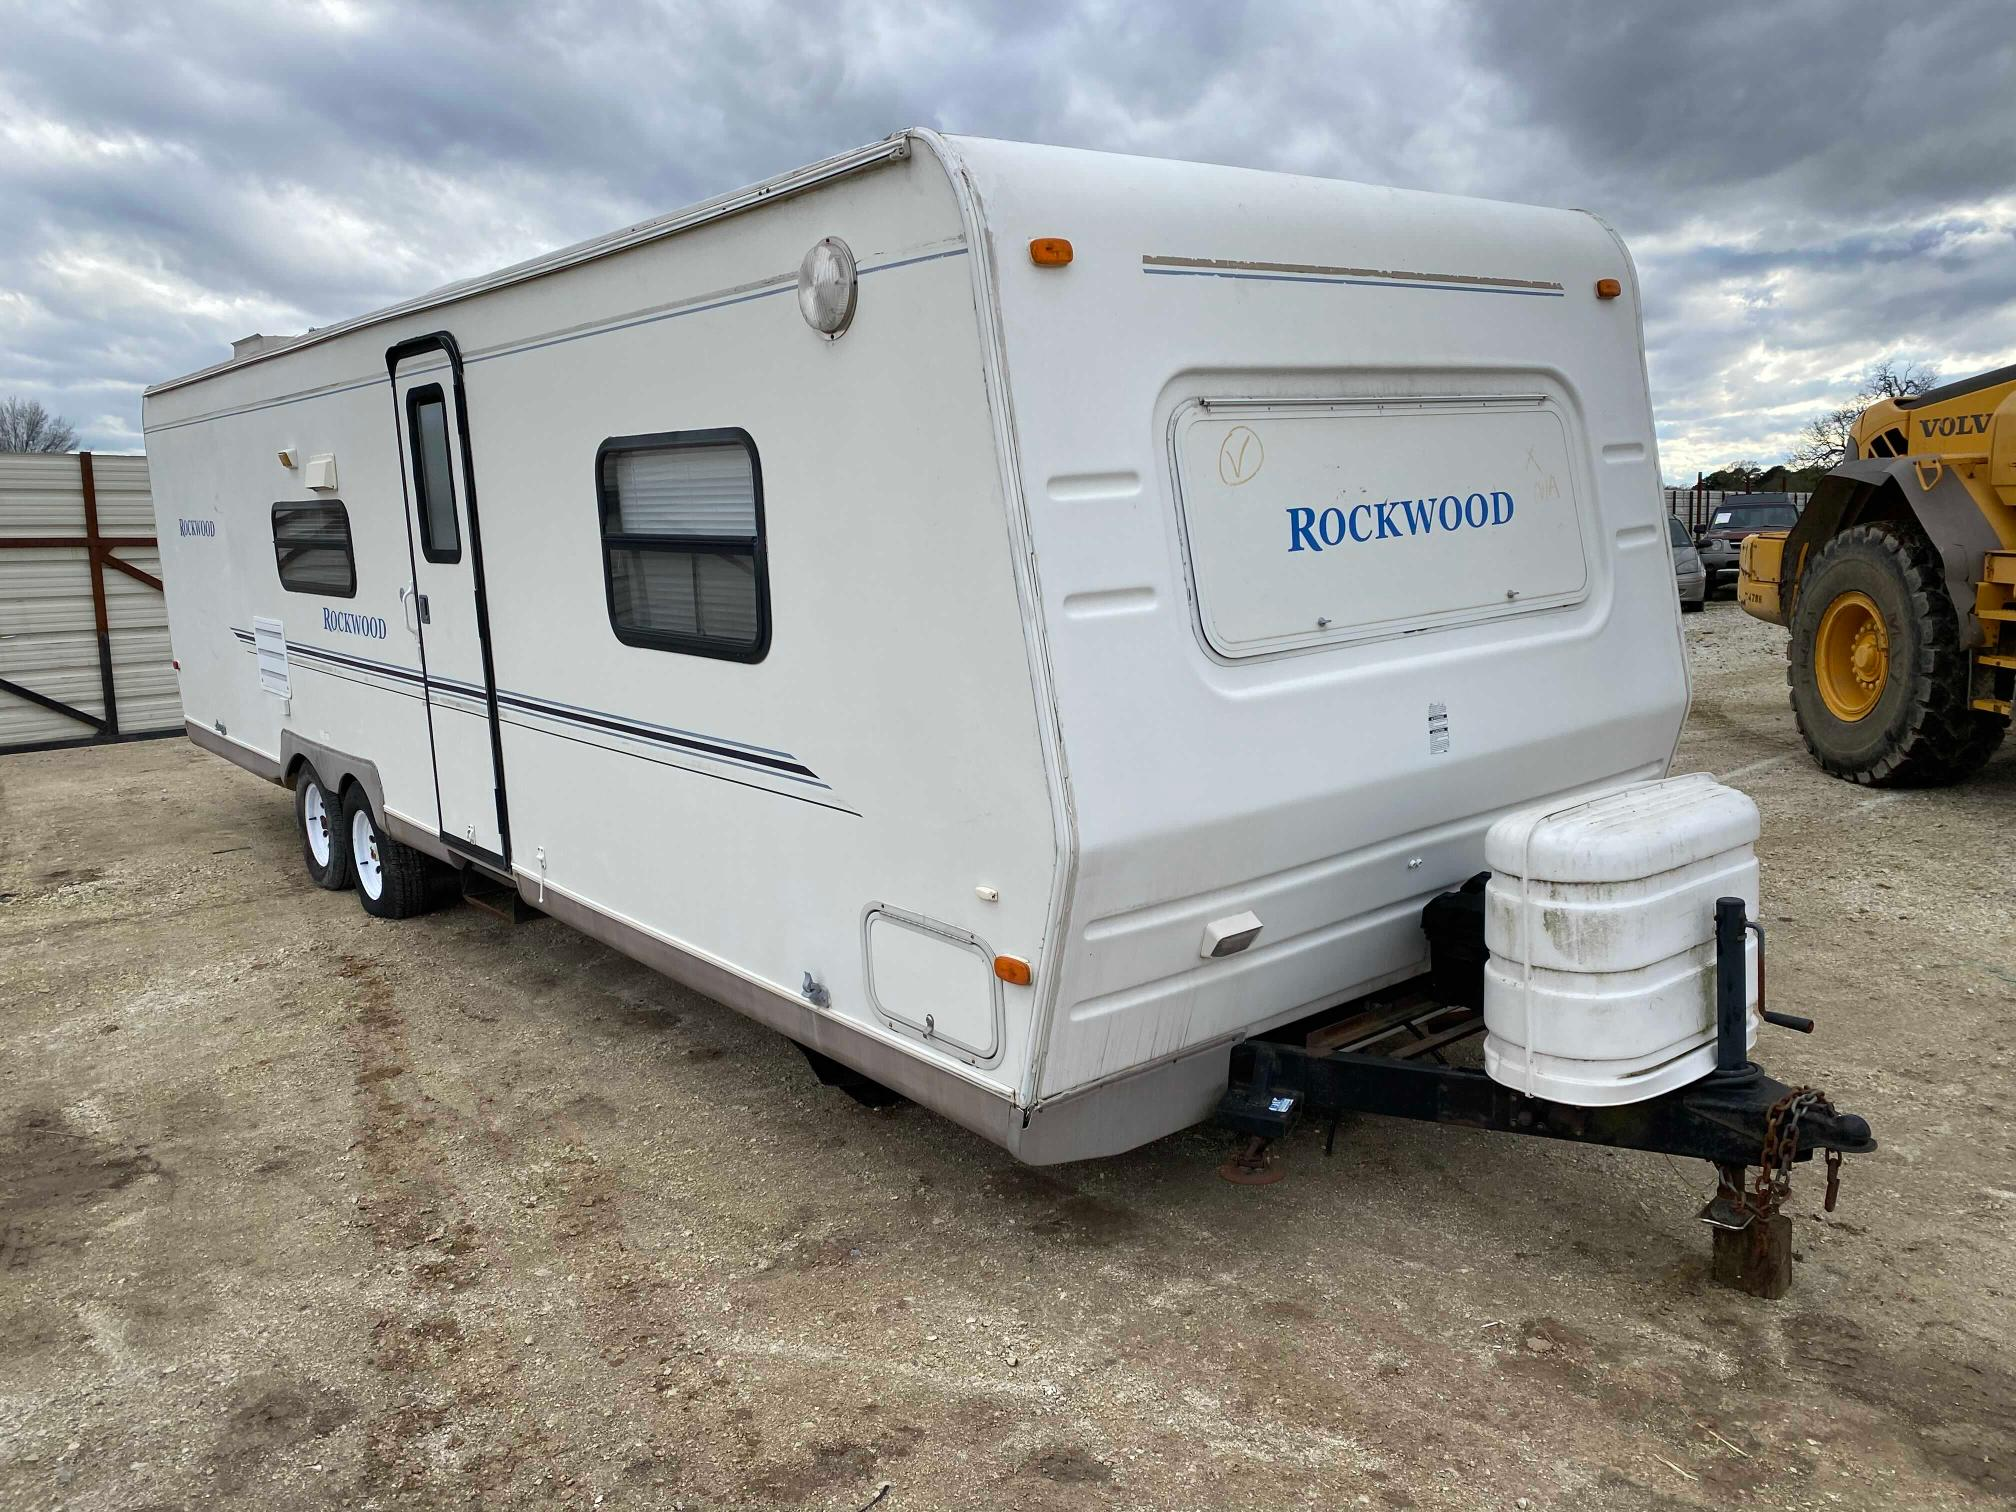 Rockwood salvage cars for sale: 2003 Rockwood Travel Trailer